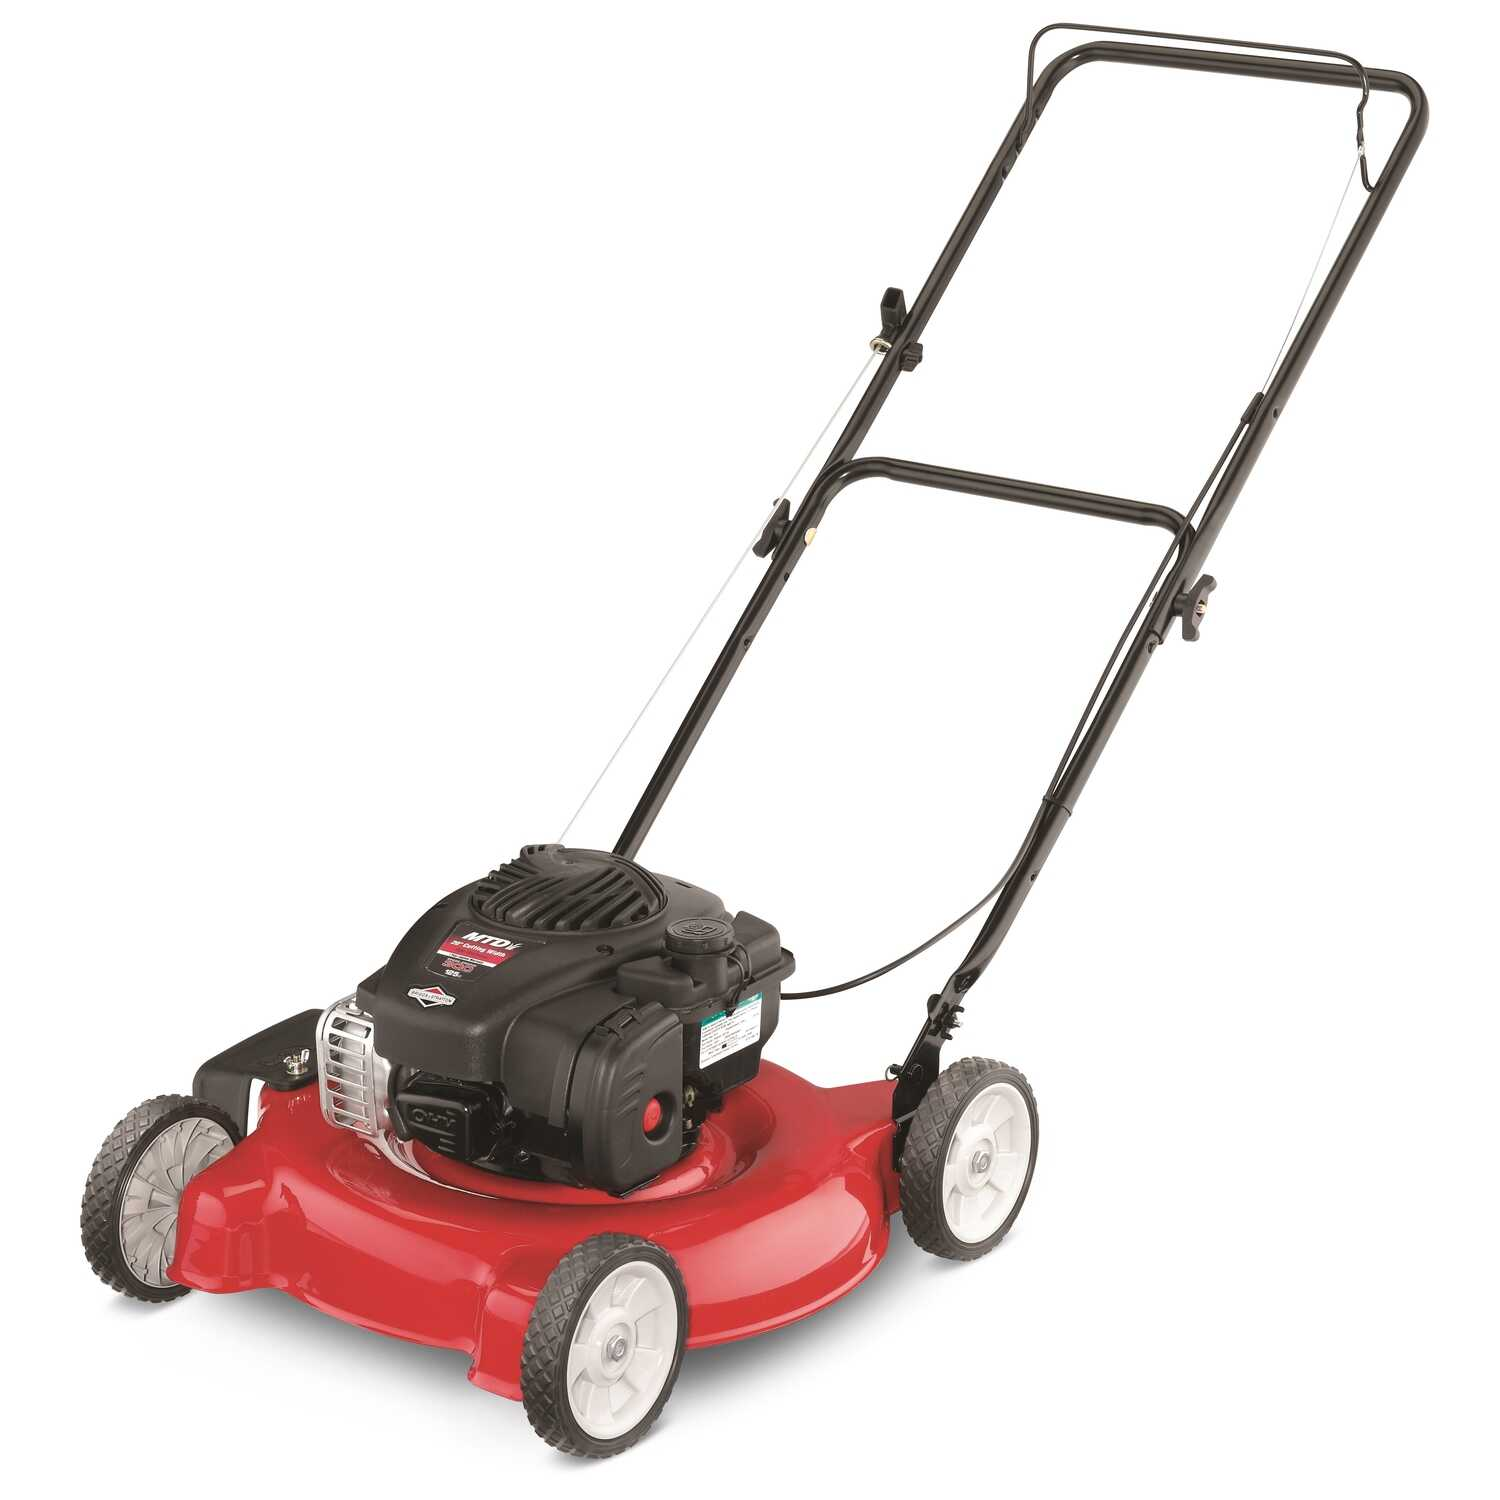 briggs and stratton lawn mower manual download